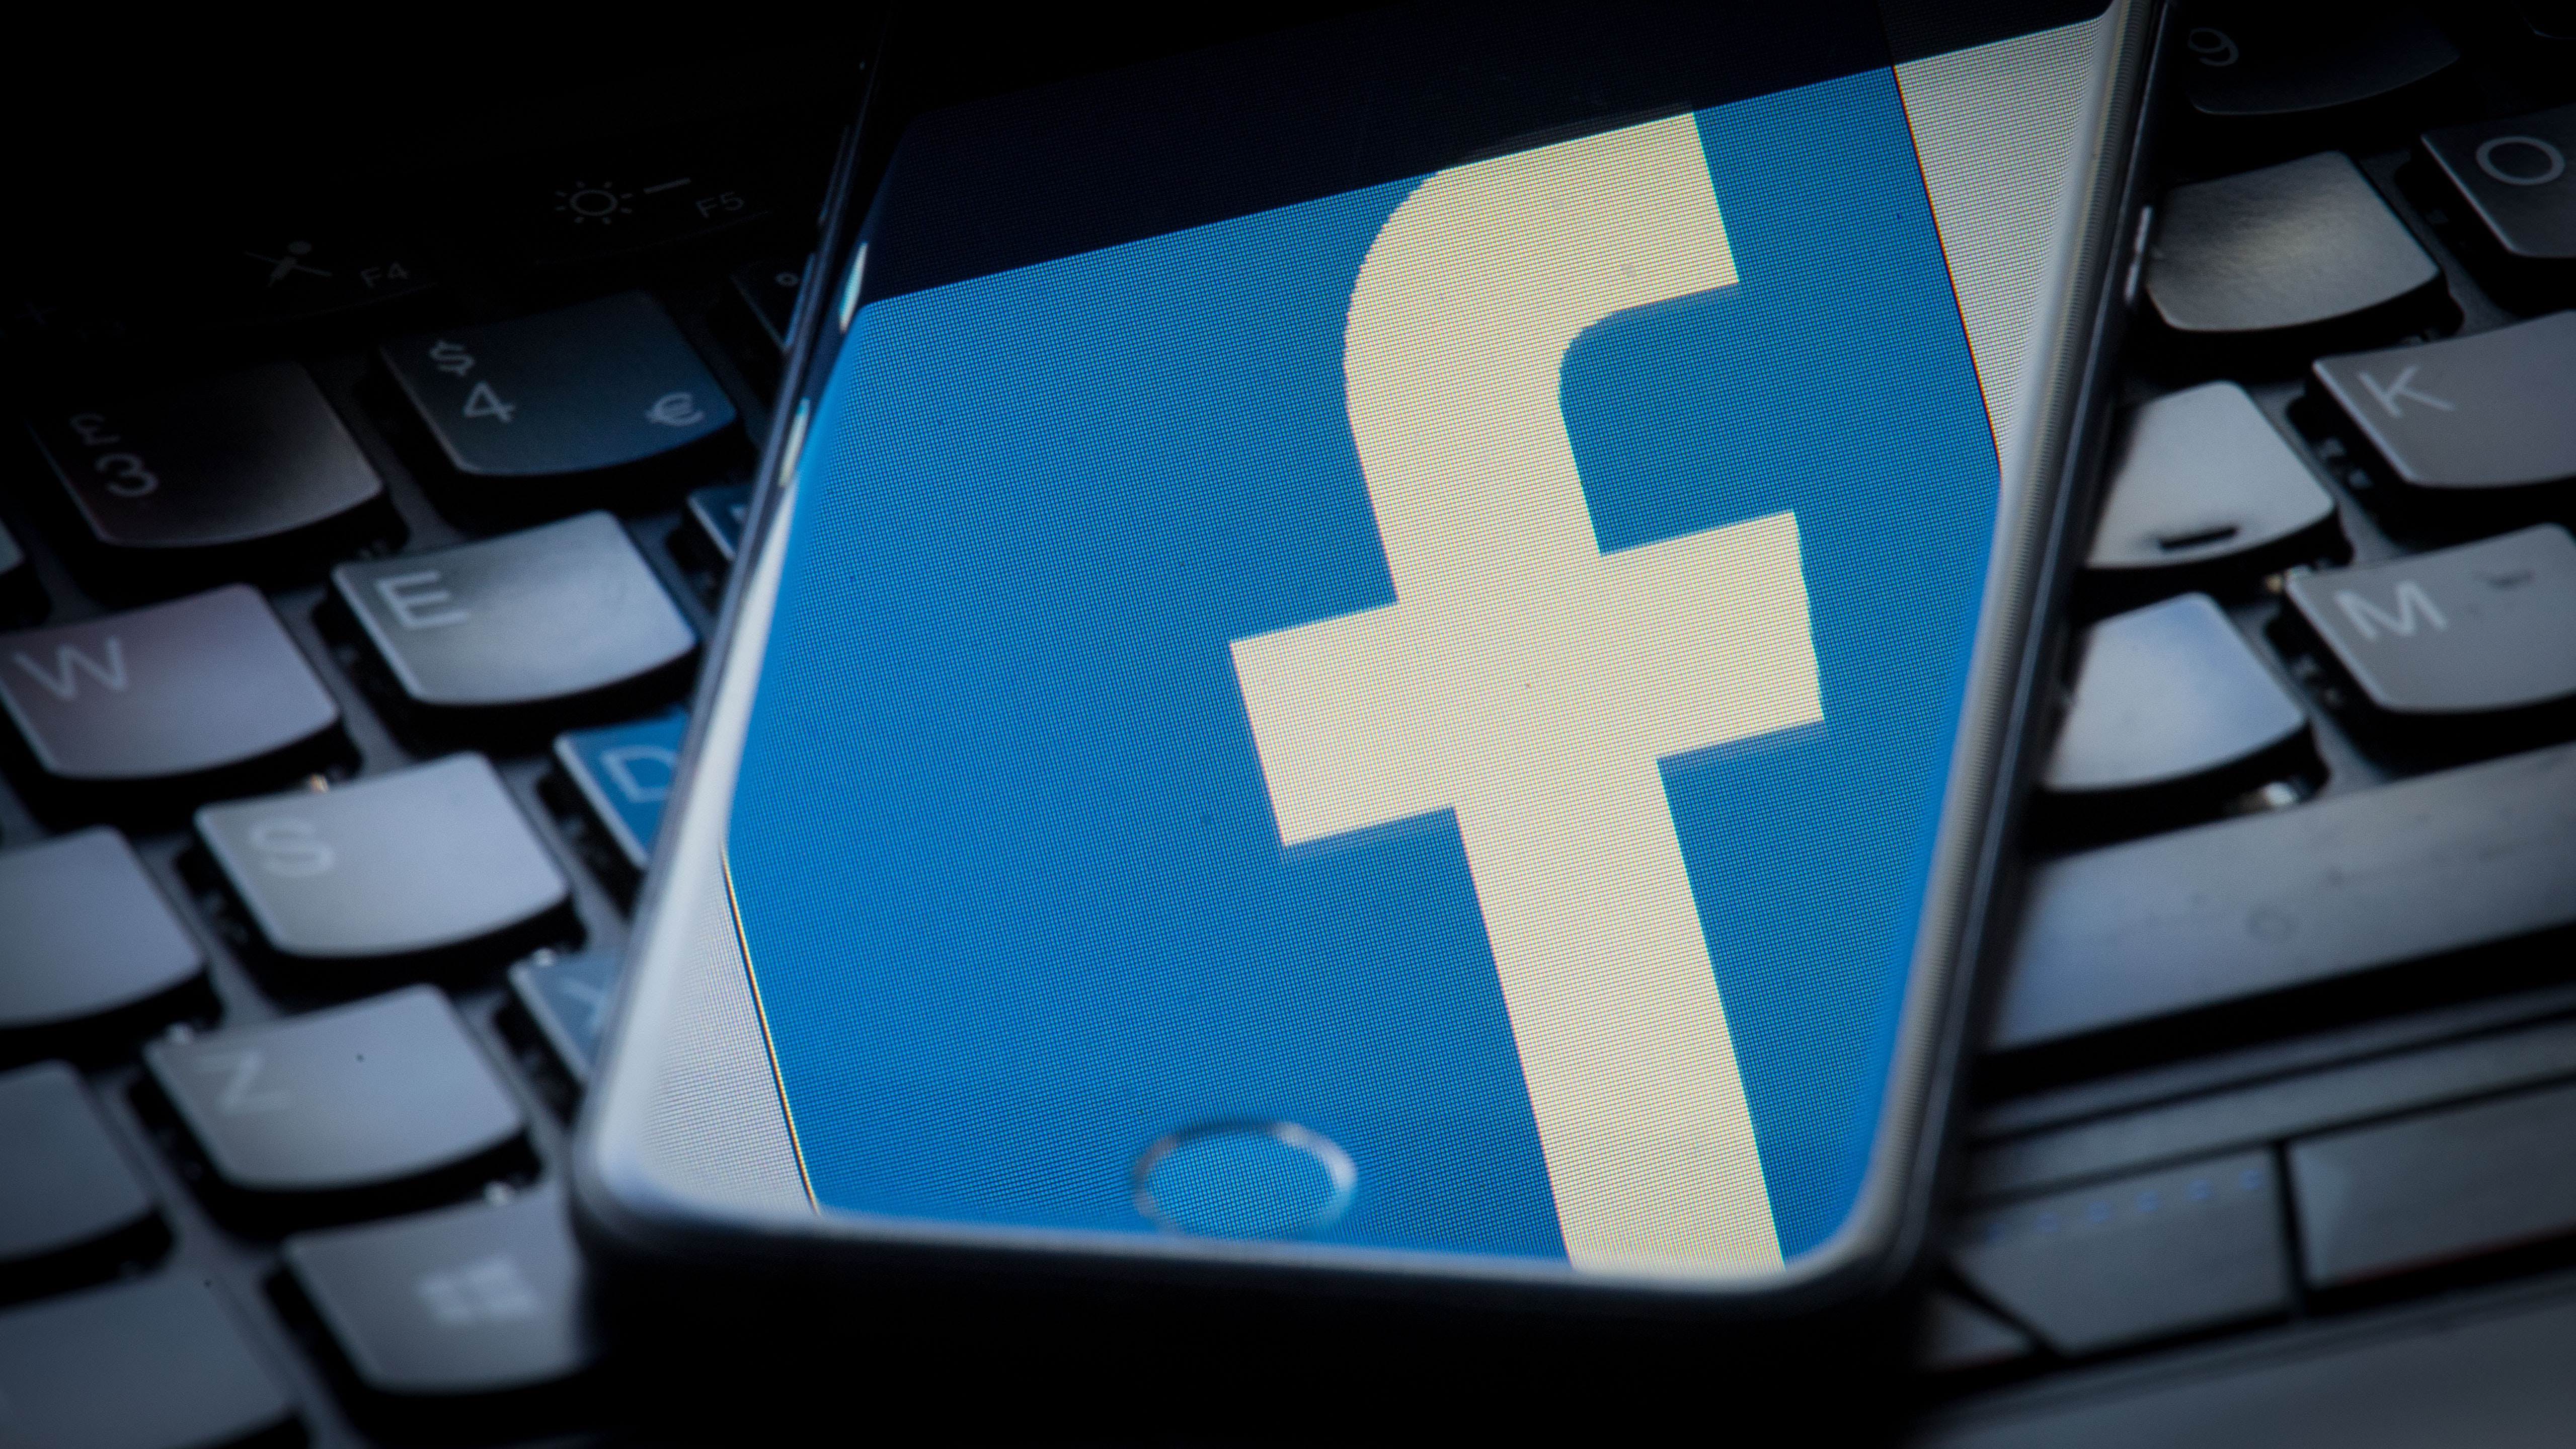 facebook security breach how to protect your account bt